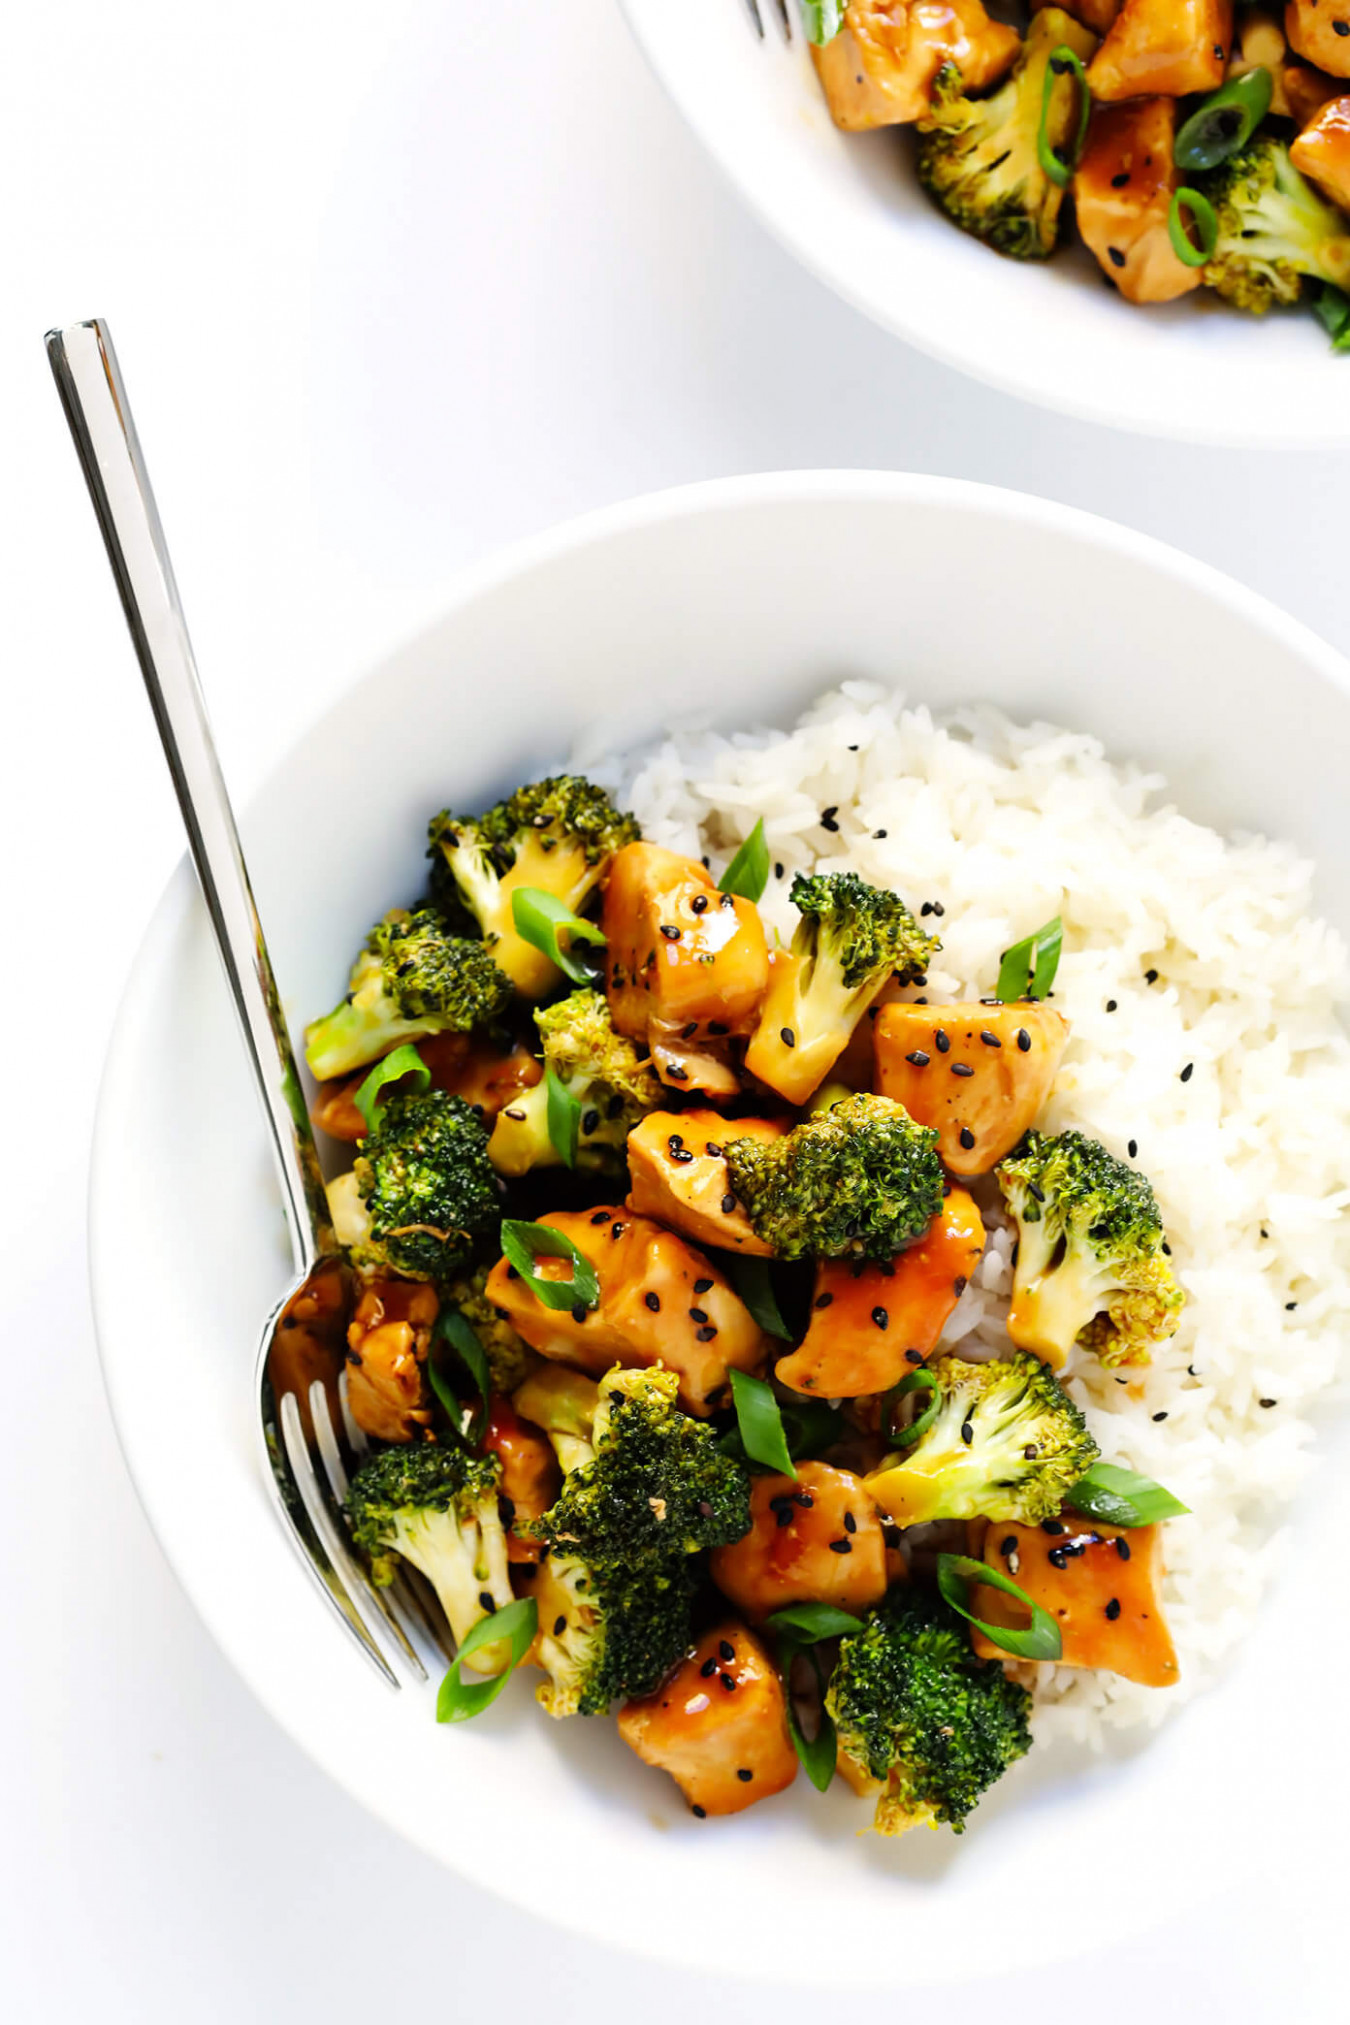 14 Minute Chicken And Broccoli - Quick And Easy Healthy Dinner Recipes For Two